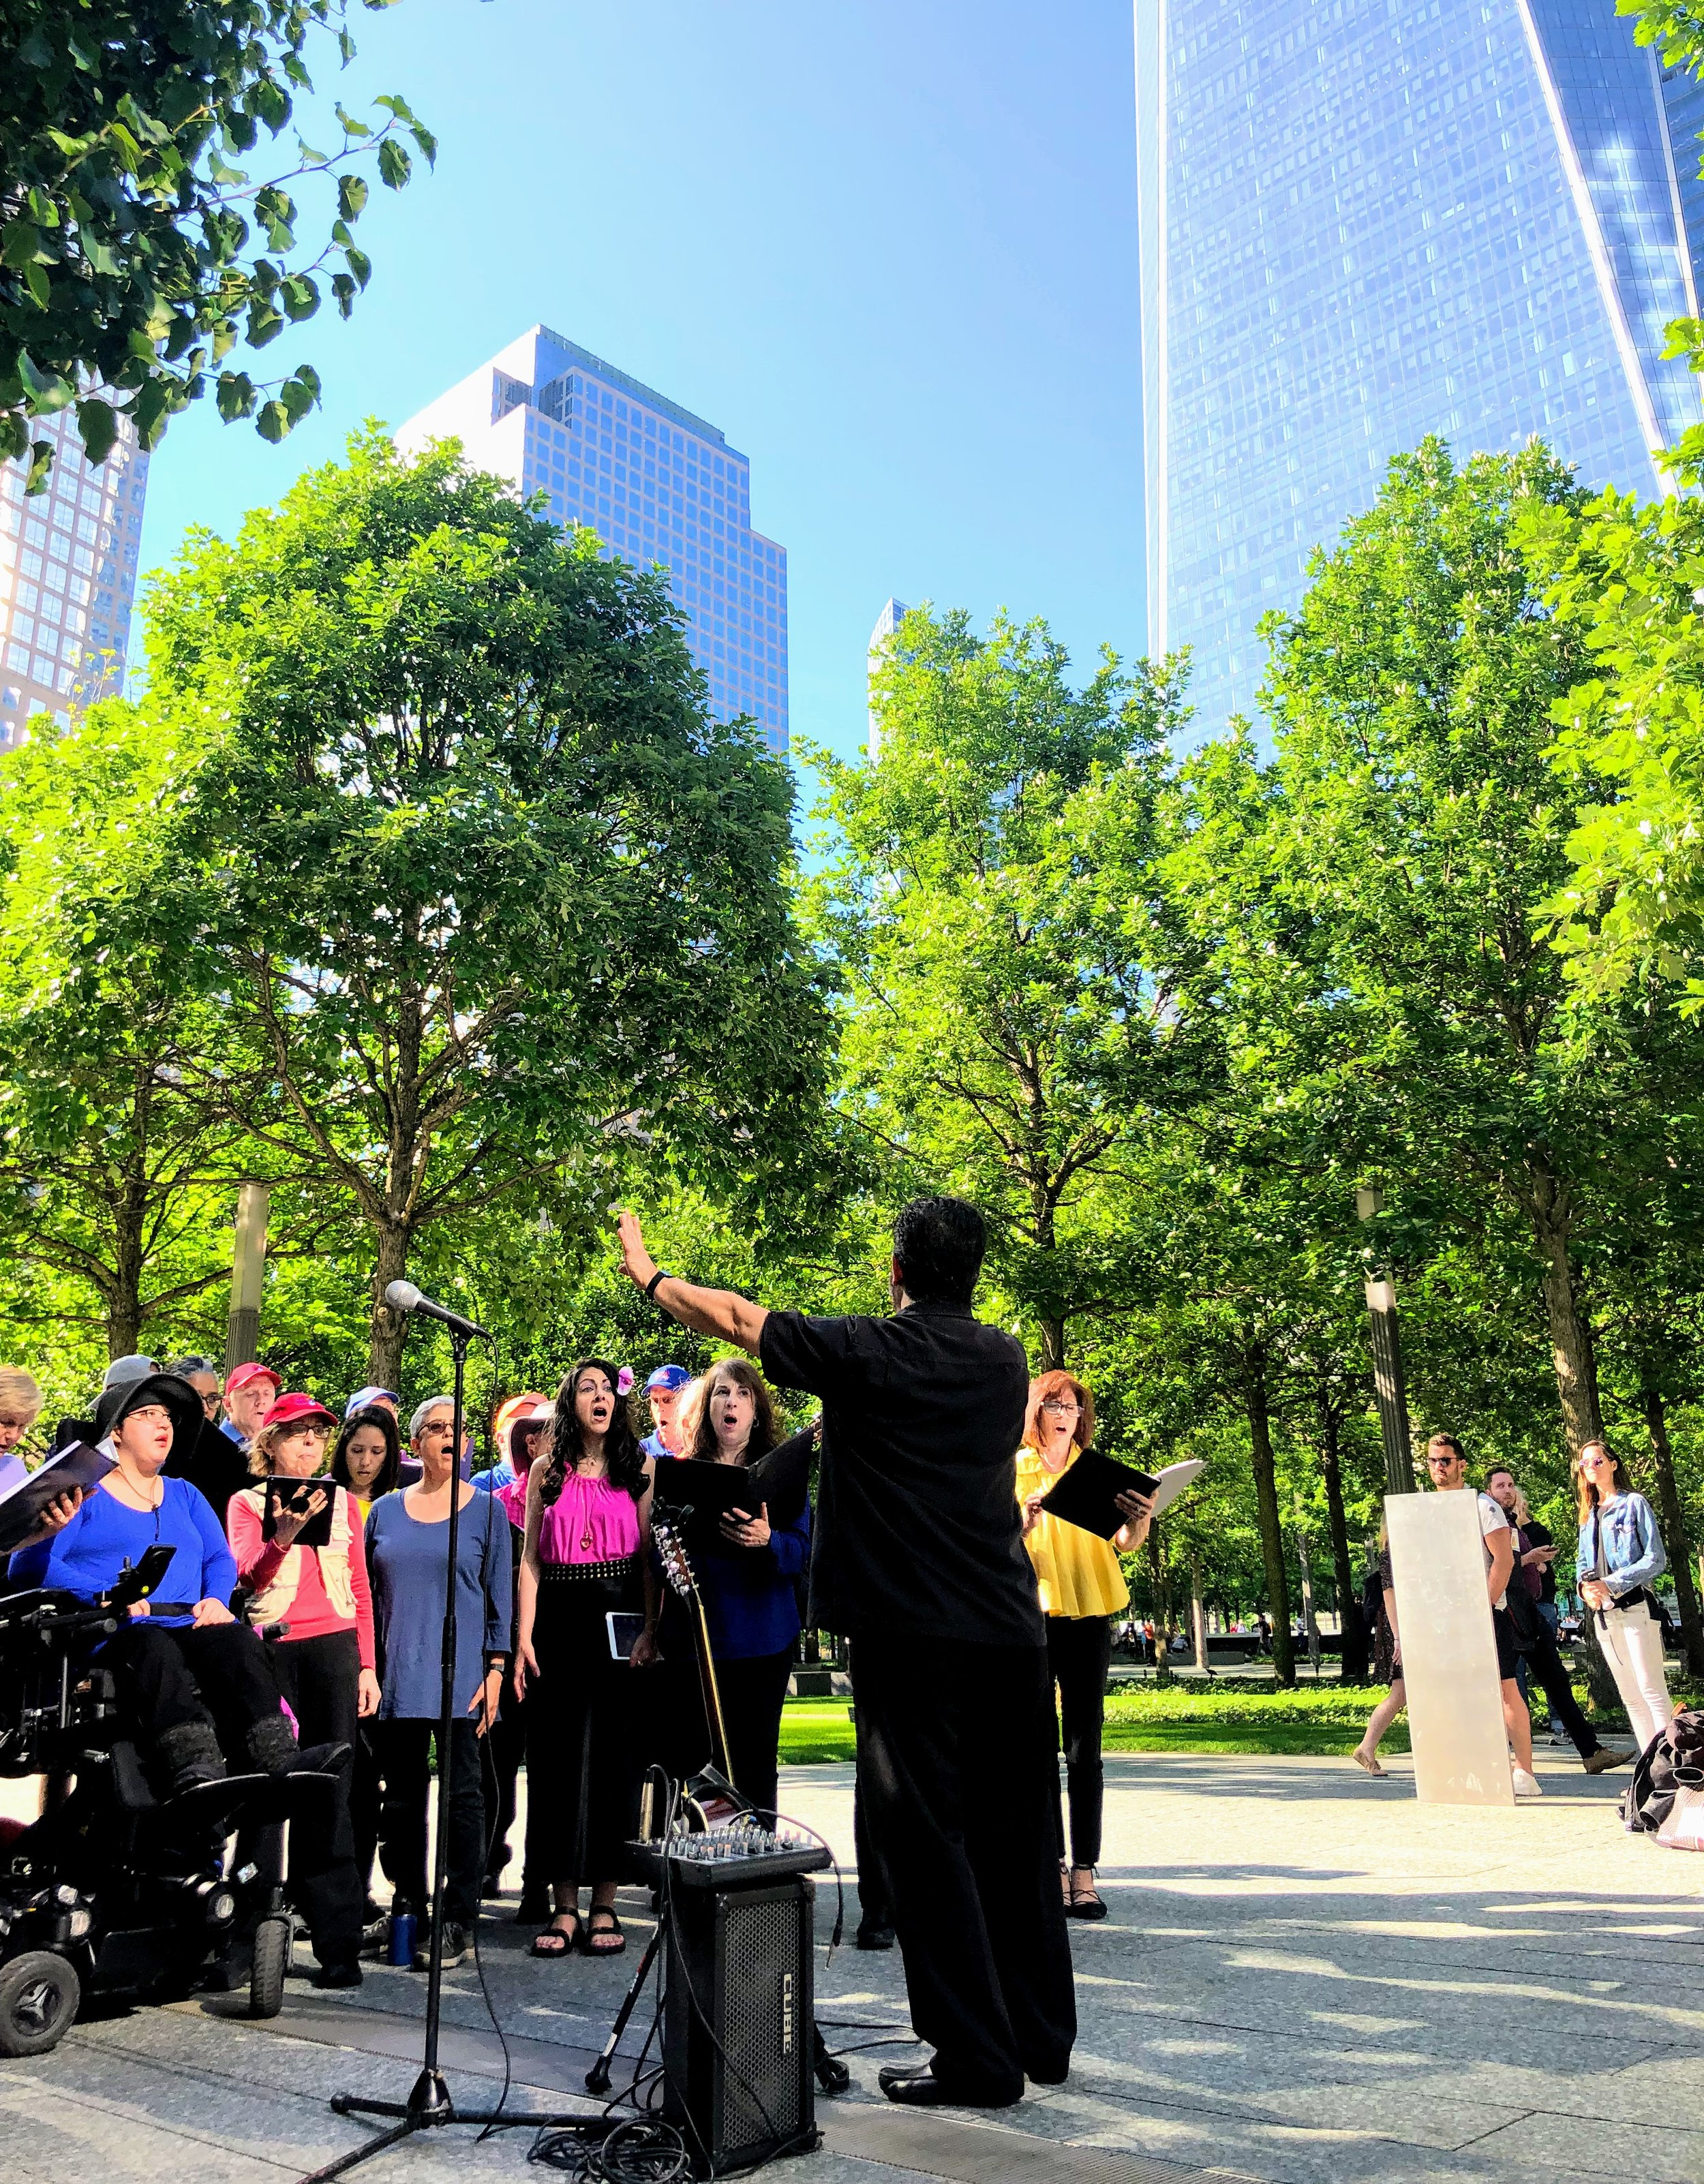 Maestro    René Galván    leads the choir as the Freedom Tower overlooks the choir at the 9/11 Memorial and Museum.